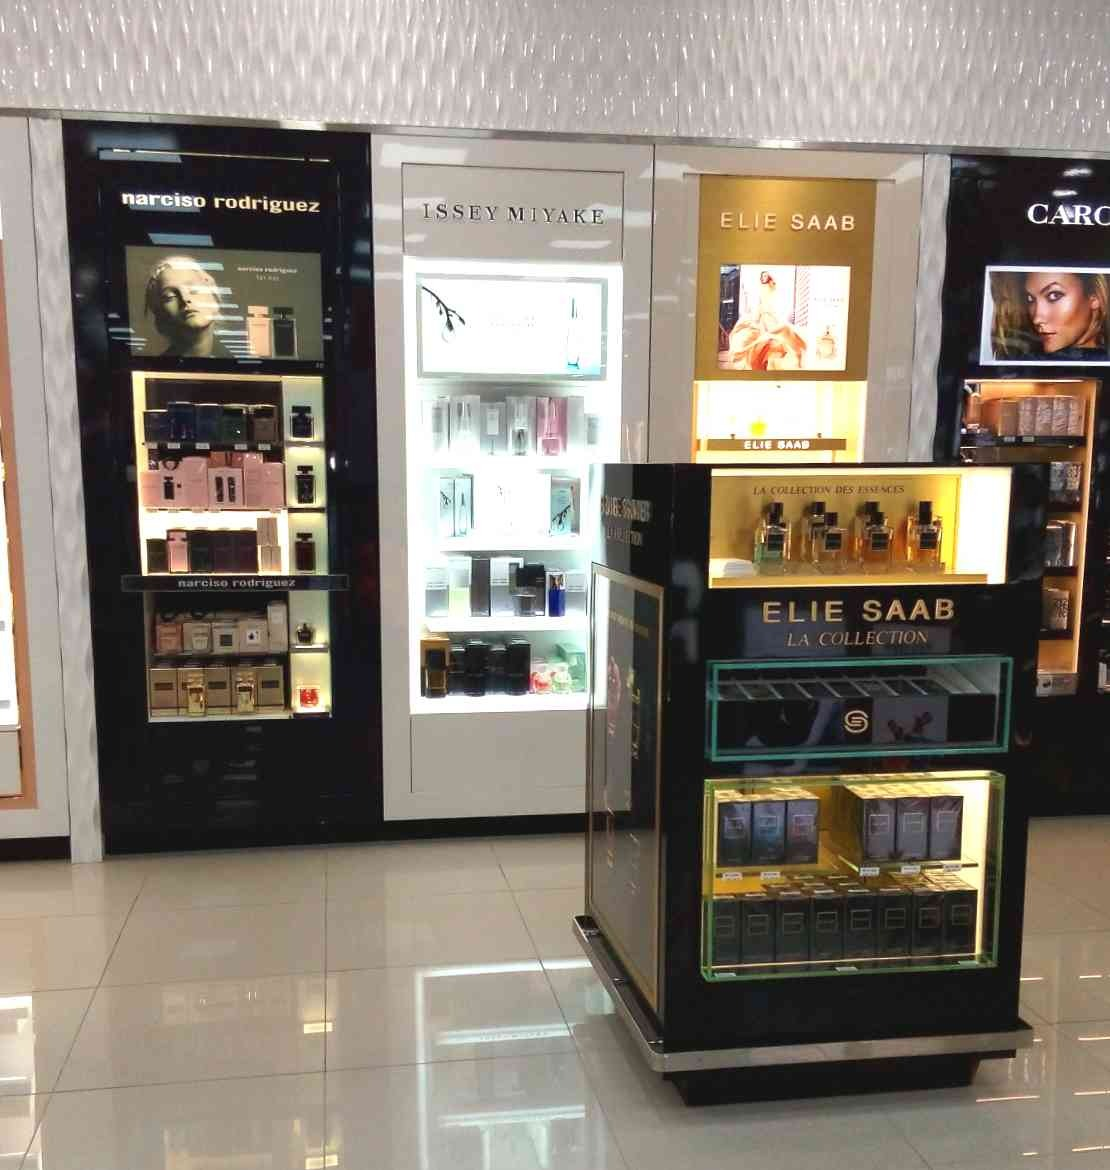 Elie Saab, Narciso Rodriguez & Issey Miyake | Perfumes | 360-16, Shiseido, Elie Saab, Narciso Rodriguez & Issey Miyake, Shop-In-Shops, Bahrain International Airport